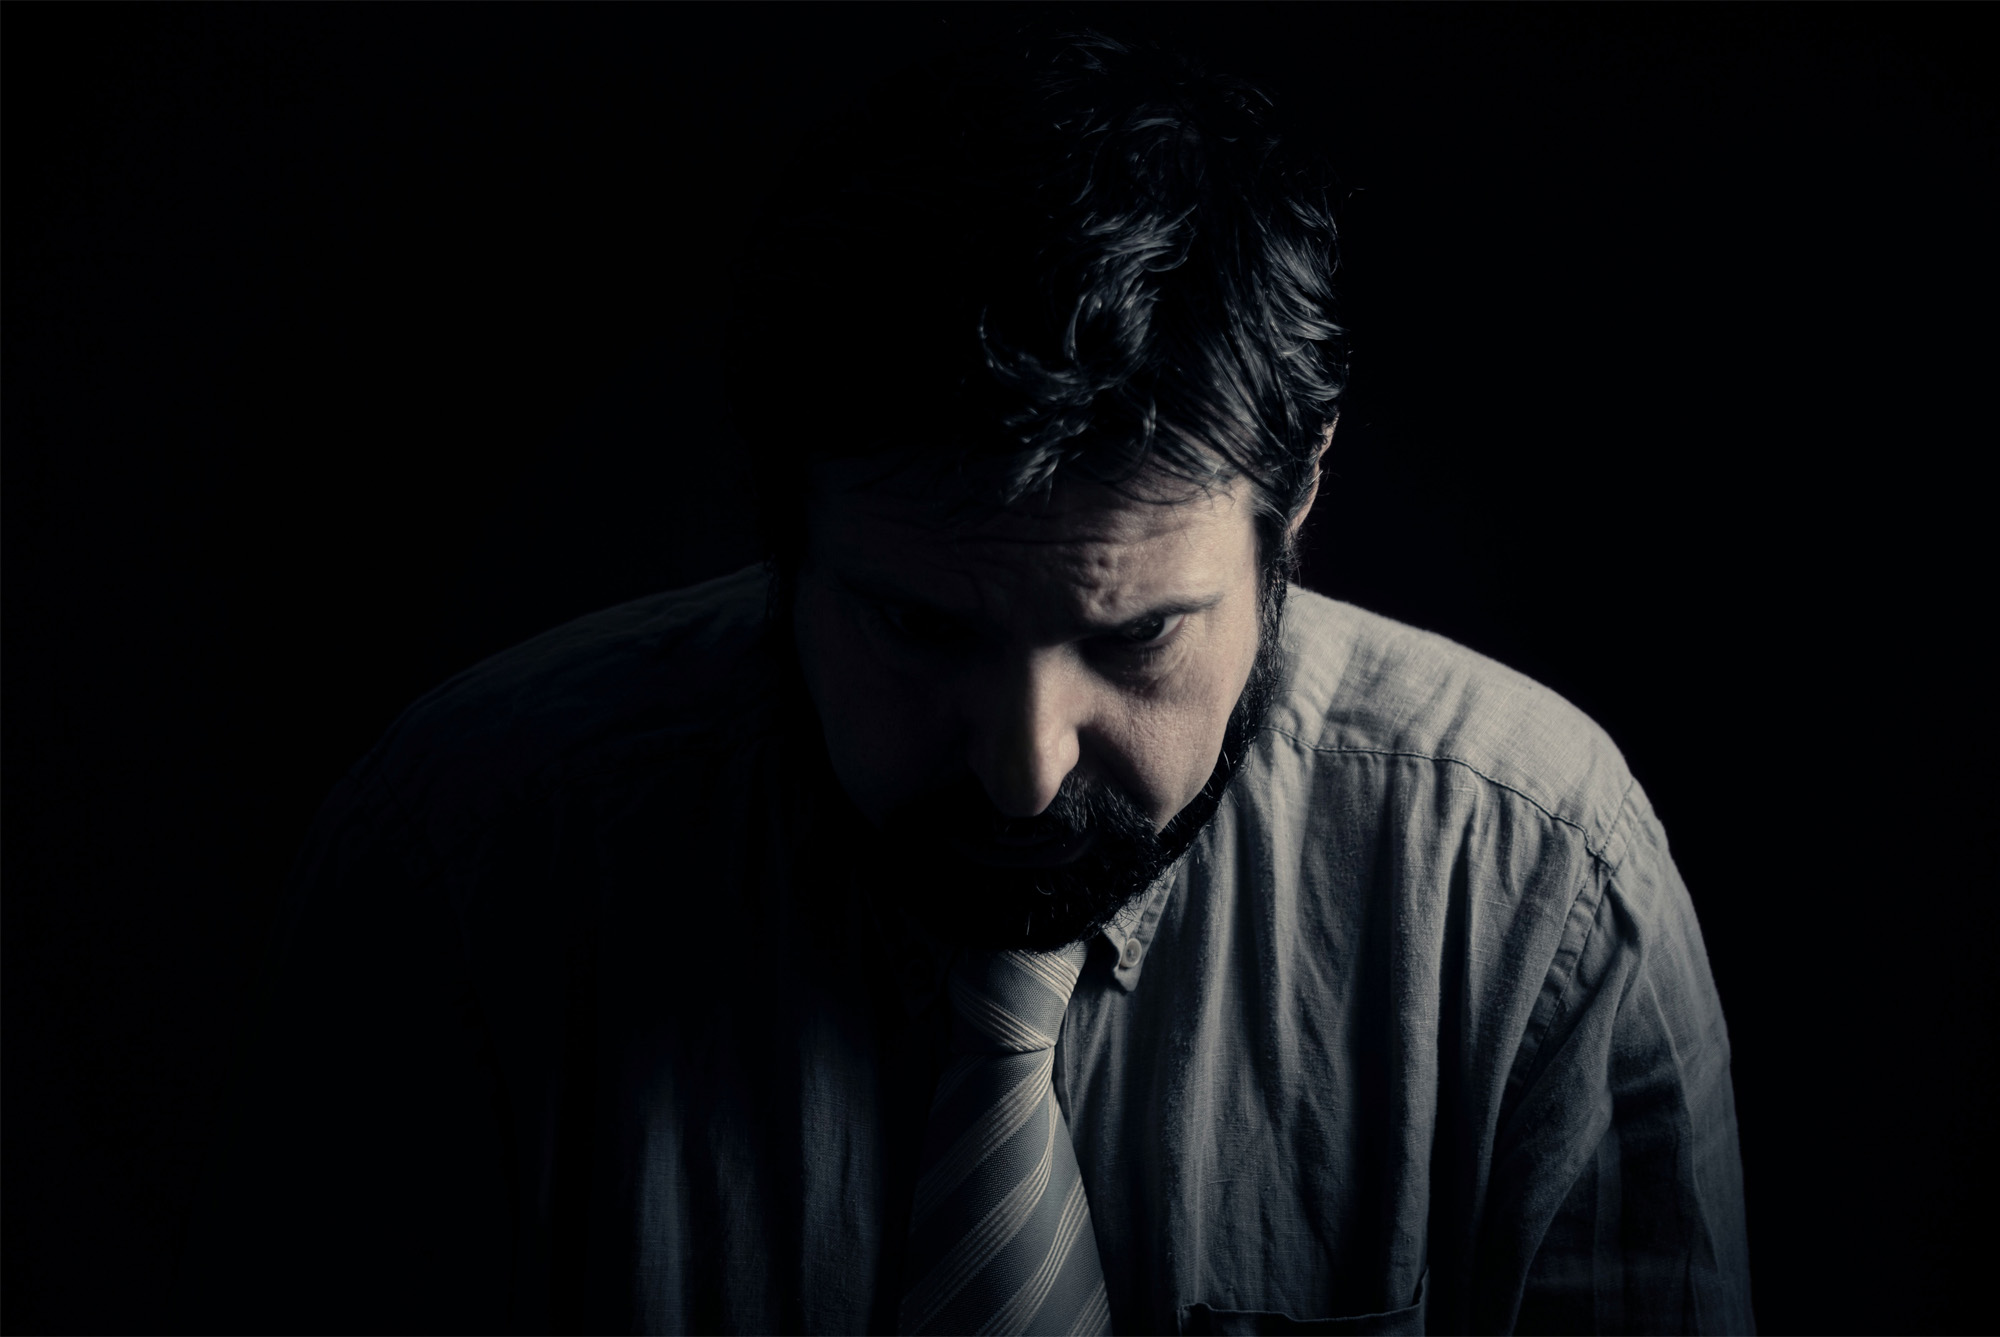 Sad man sitting in the dark contemplating how to survive his unhealthy marriage.